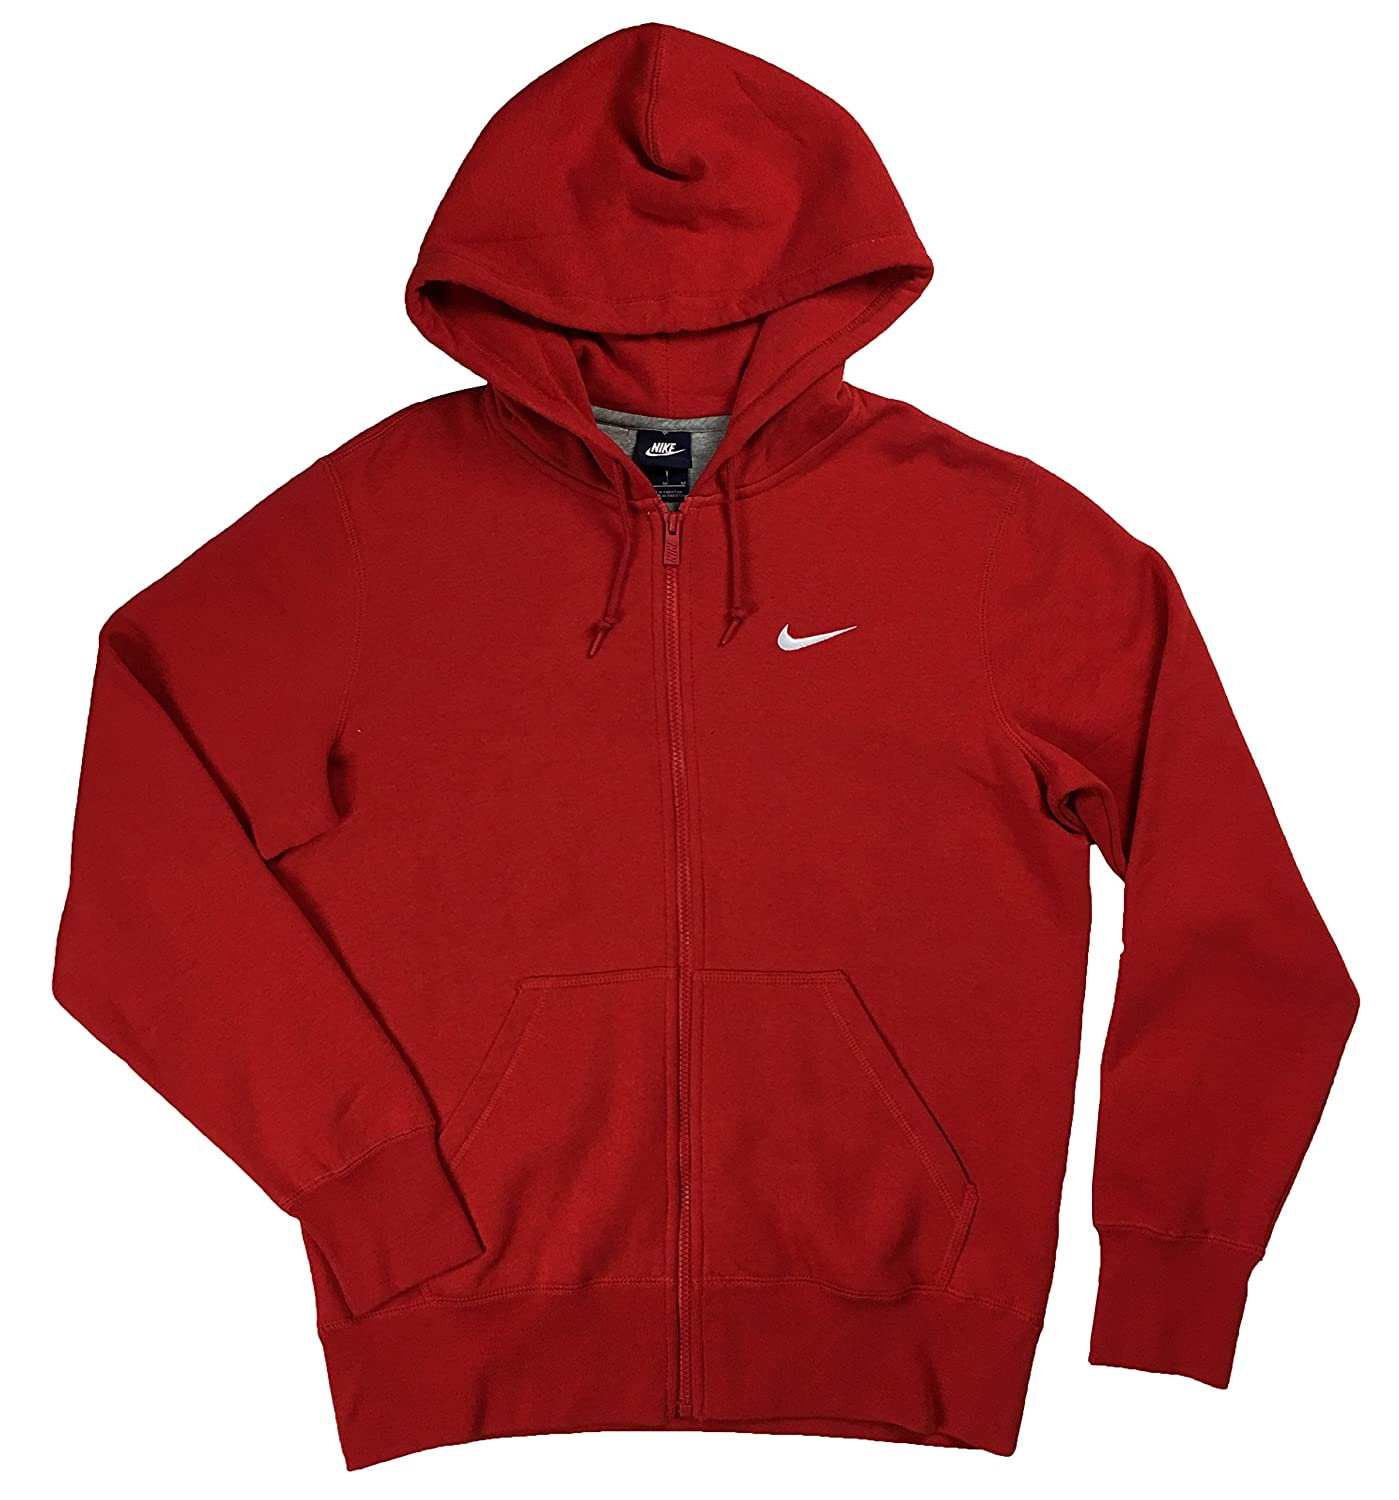 88d6243412 well-wreapped Nike Club Full Zip Hoody  611456-473 - begbil16.mrf.se